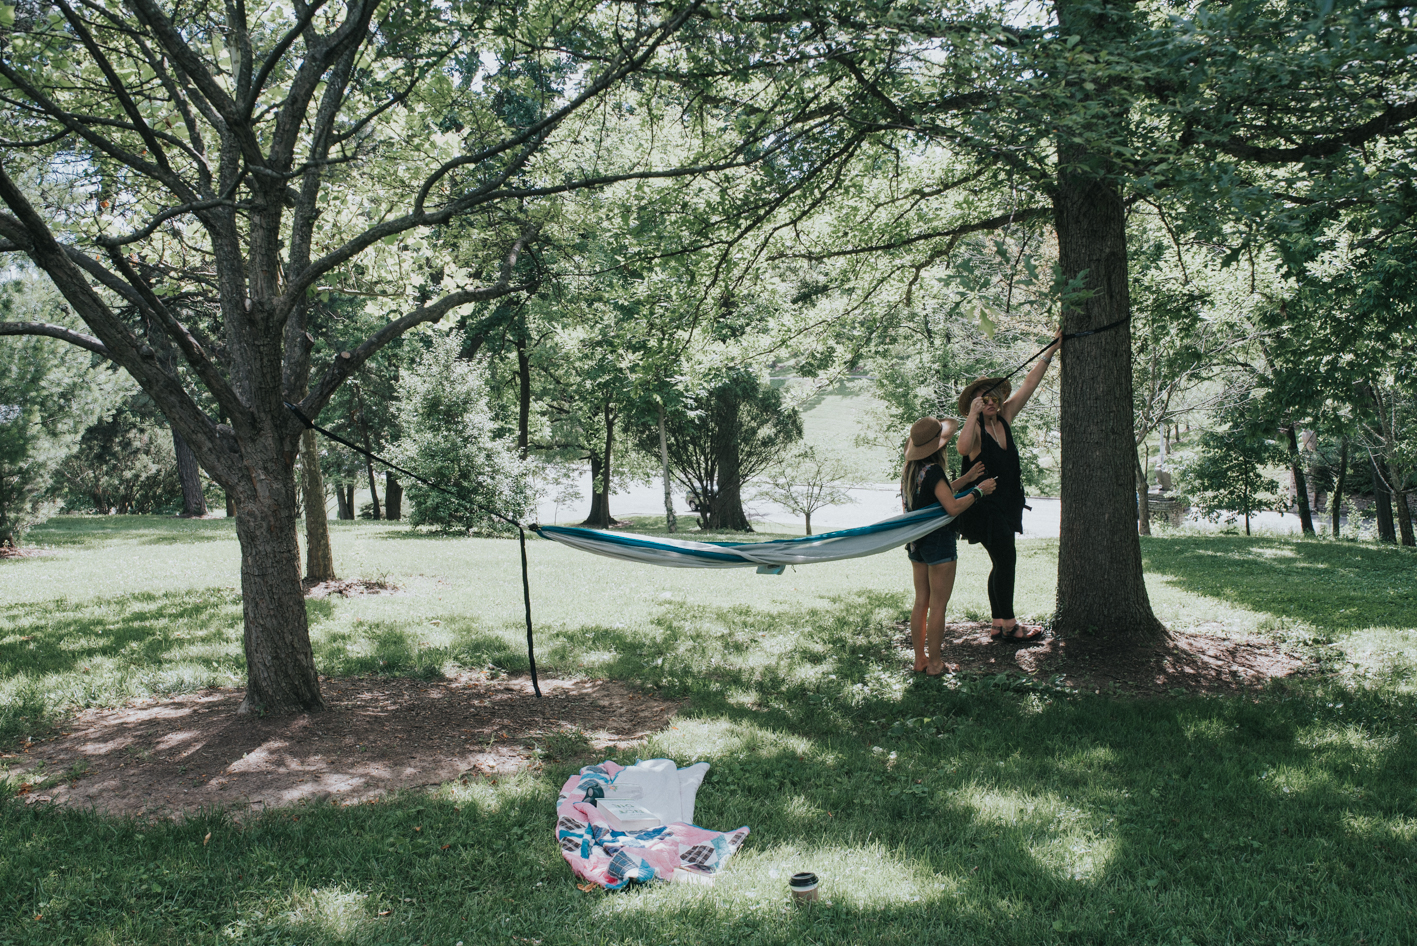 Find two sturdy trees, throw up your hammock, and chill with a book or a nap. The choice is yours. / Location: Eden Park / Address: 950 Eden Park Dr (45202) / Image: Brianna Long // Published: 6.14.17